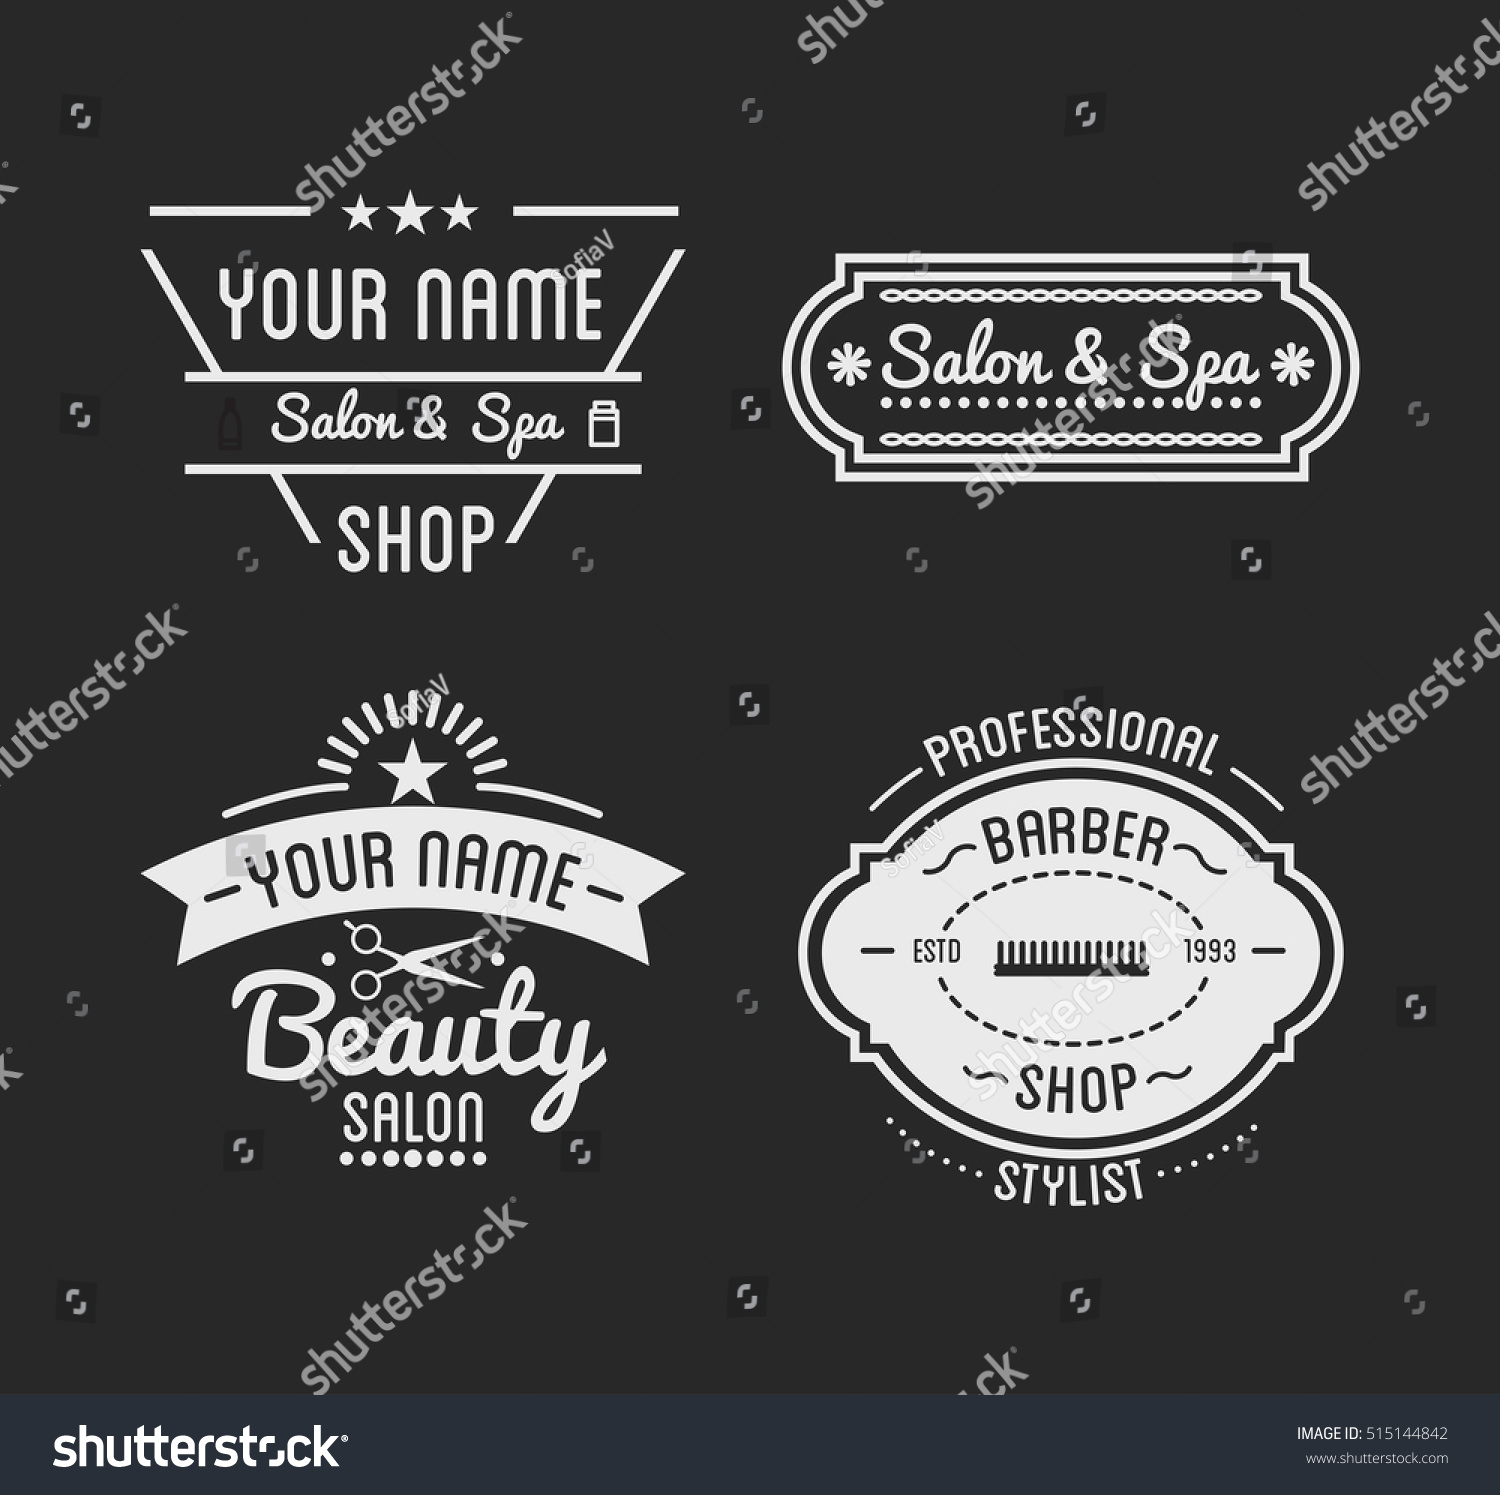 Clip art vector of vintage barber shop logo graphics and icon vector - Set Of Vintage Barber Shop Logo And Beauty Spa Salon Badges Vector Elements Isolated